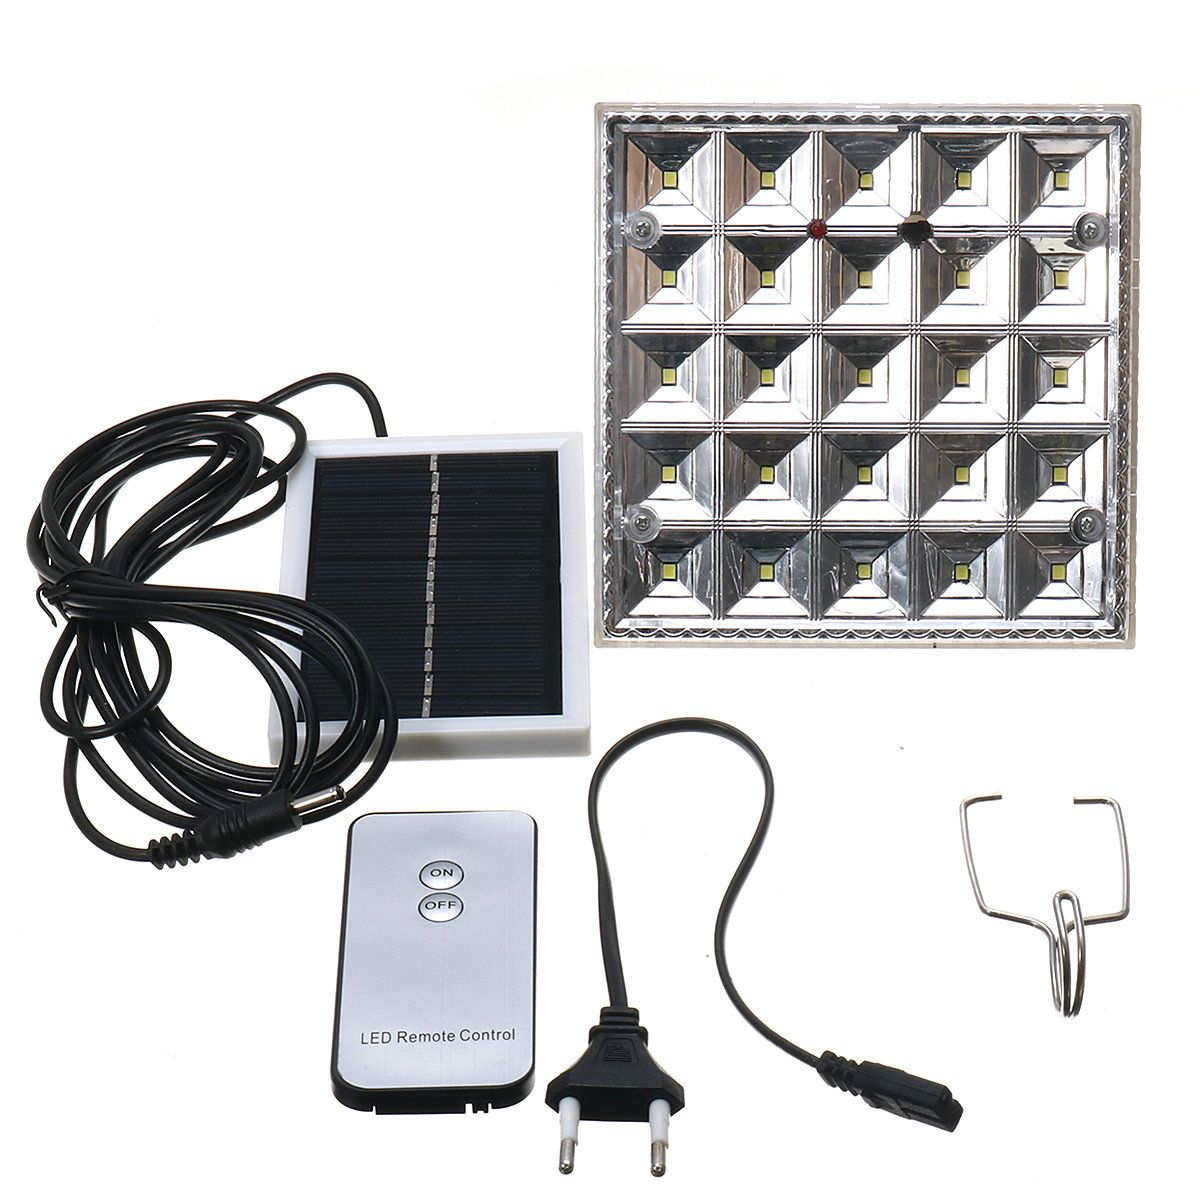 IPRee™ 25 LED Solar Camping Light Hanging Tent Lamp Lantern With Remote Control